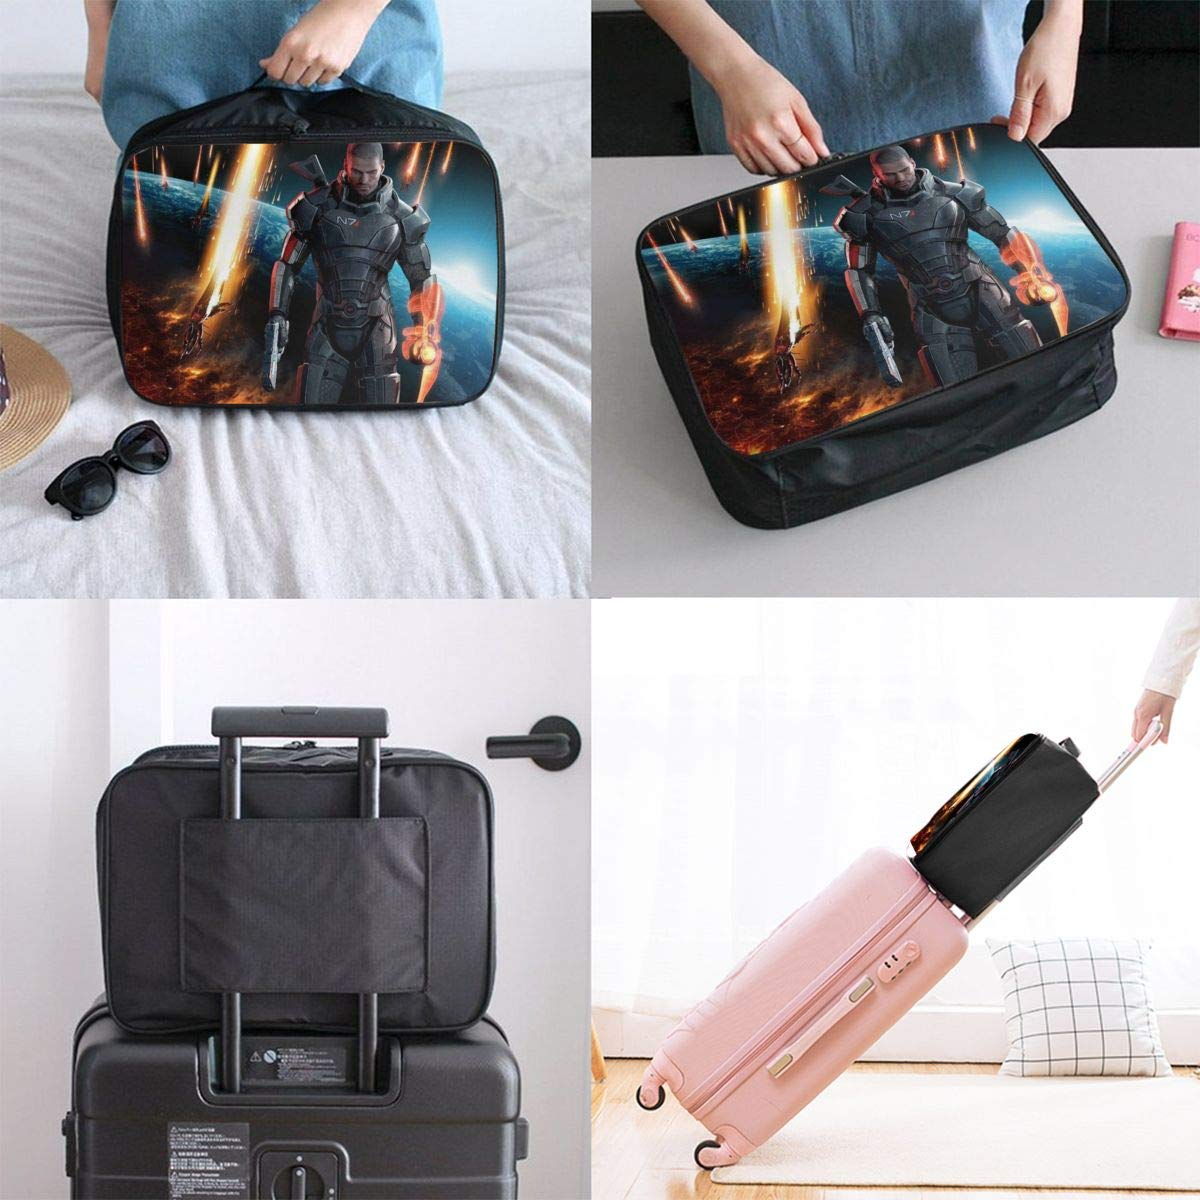 One N7 Muscle Warriors Customize Casual Portable Travel Bag Suitcase Storage Bag Luggage Packing Tote Bag Trolley Bag